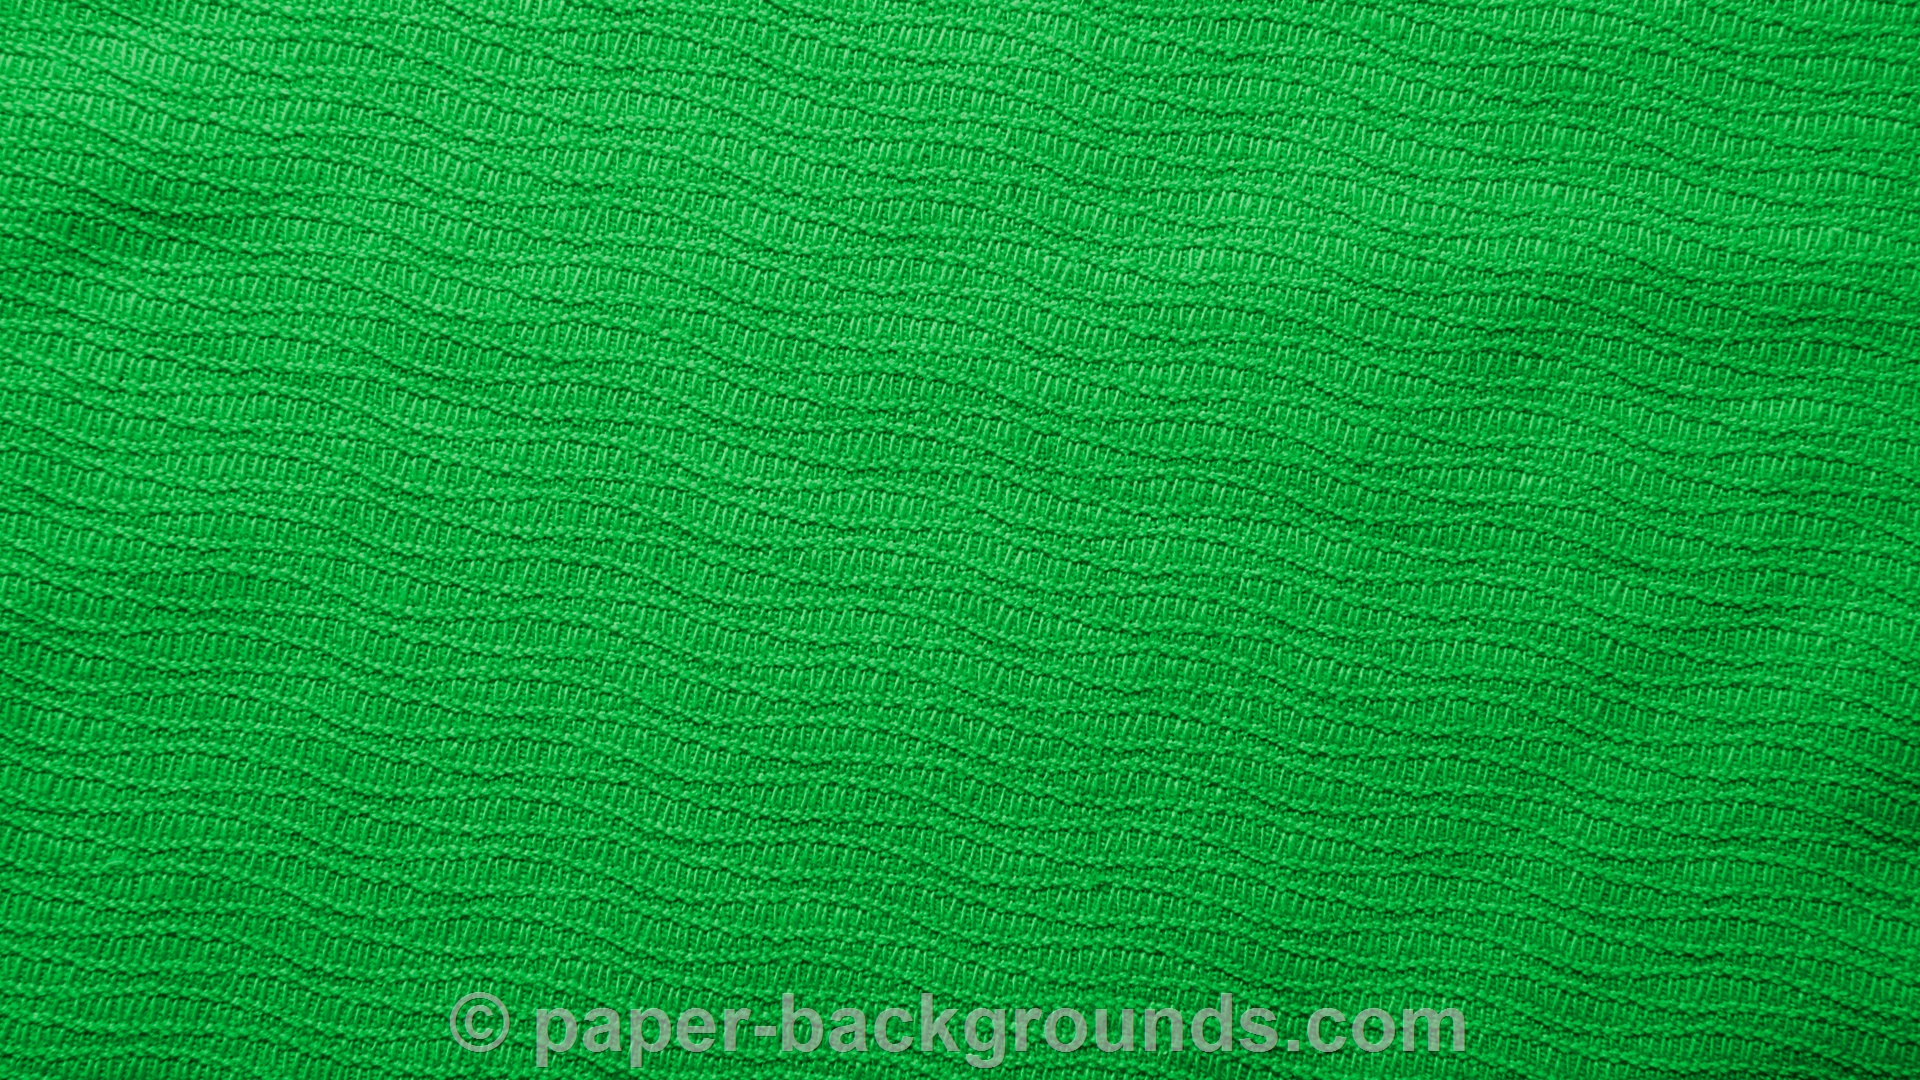 Green Fabric Material Texture HD